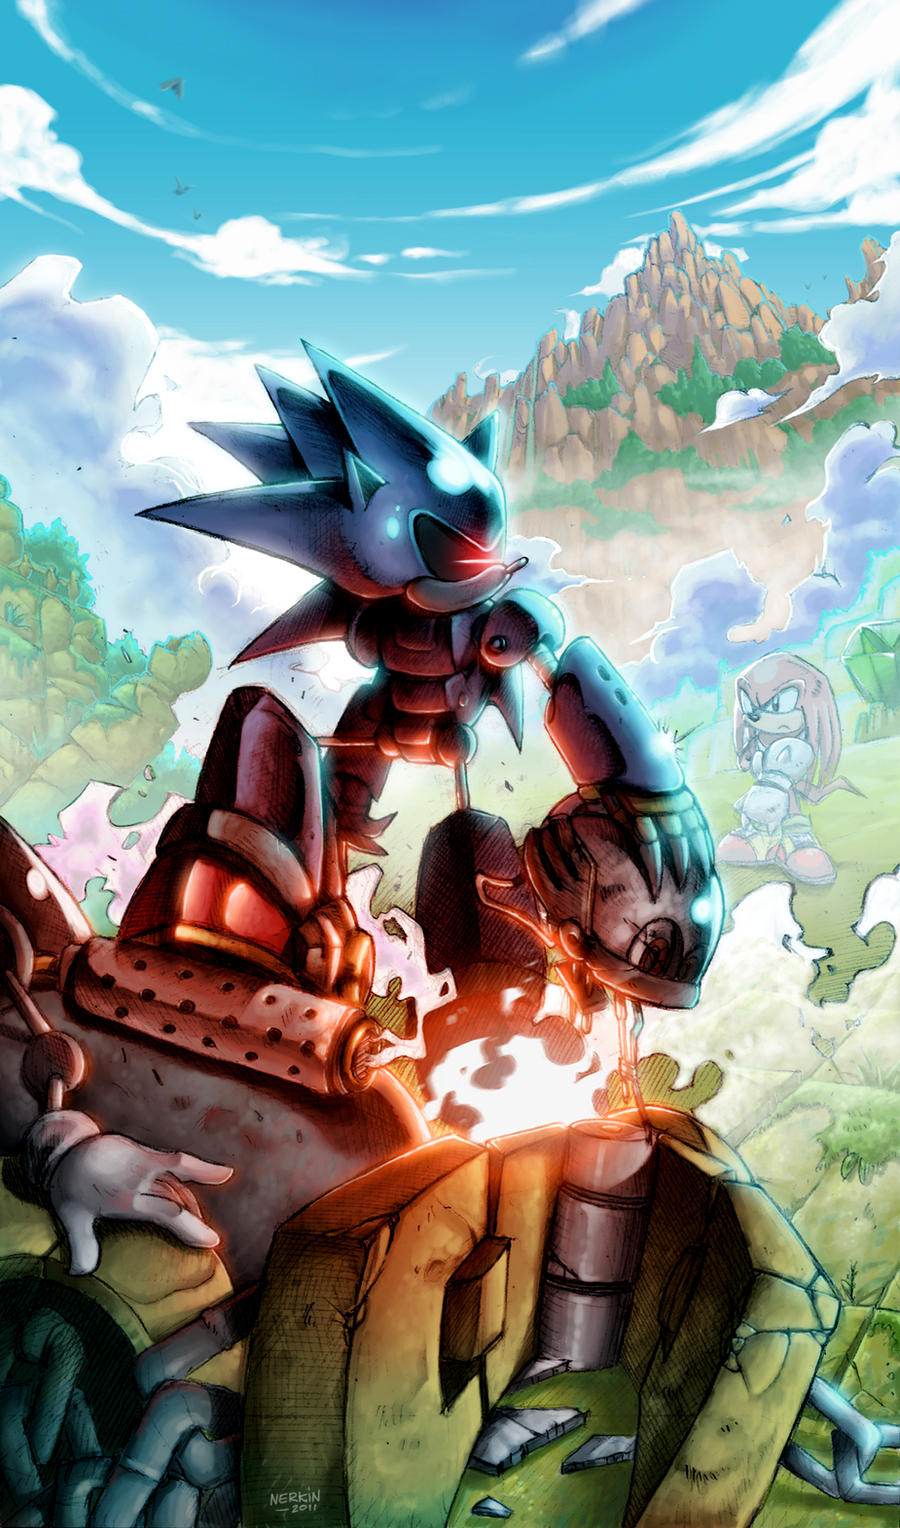 Mecha sonic vs knuckles by nerkin on deviantart - Jeux de sonic vs shadow ...